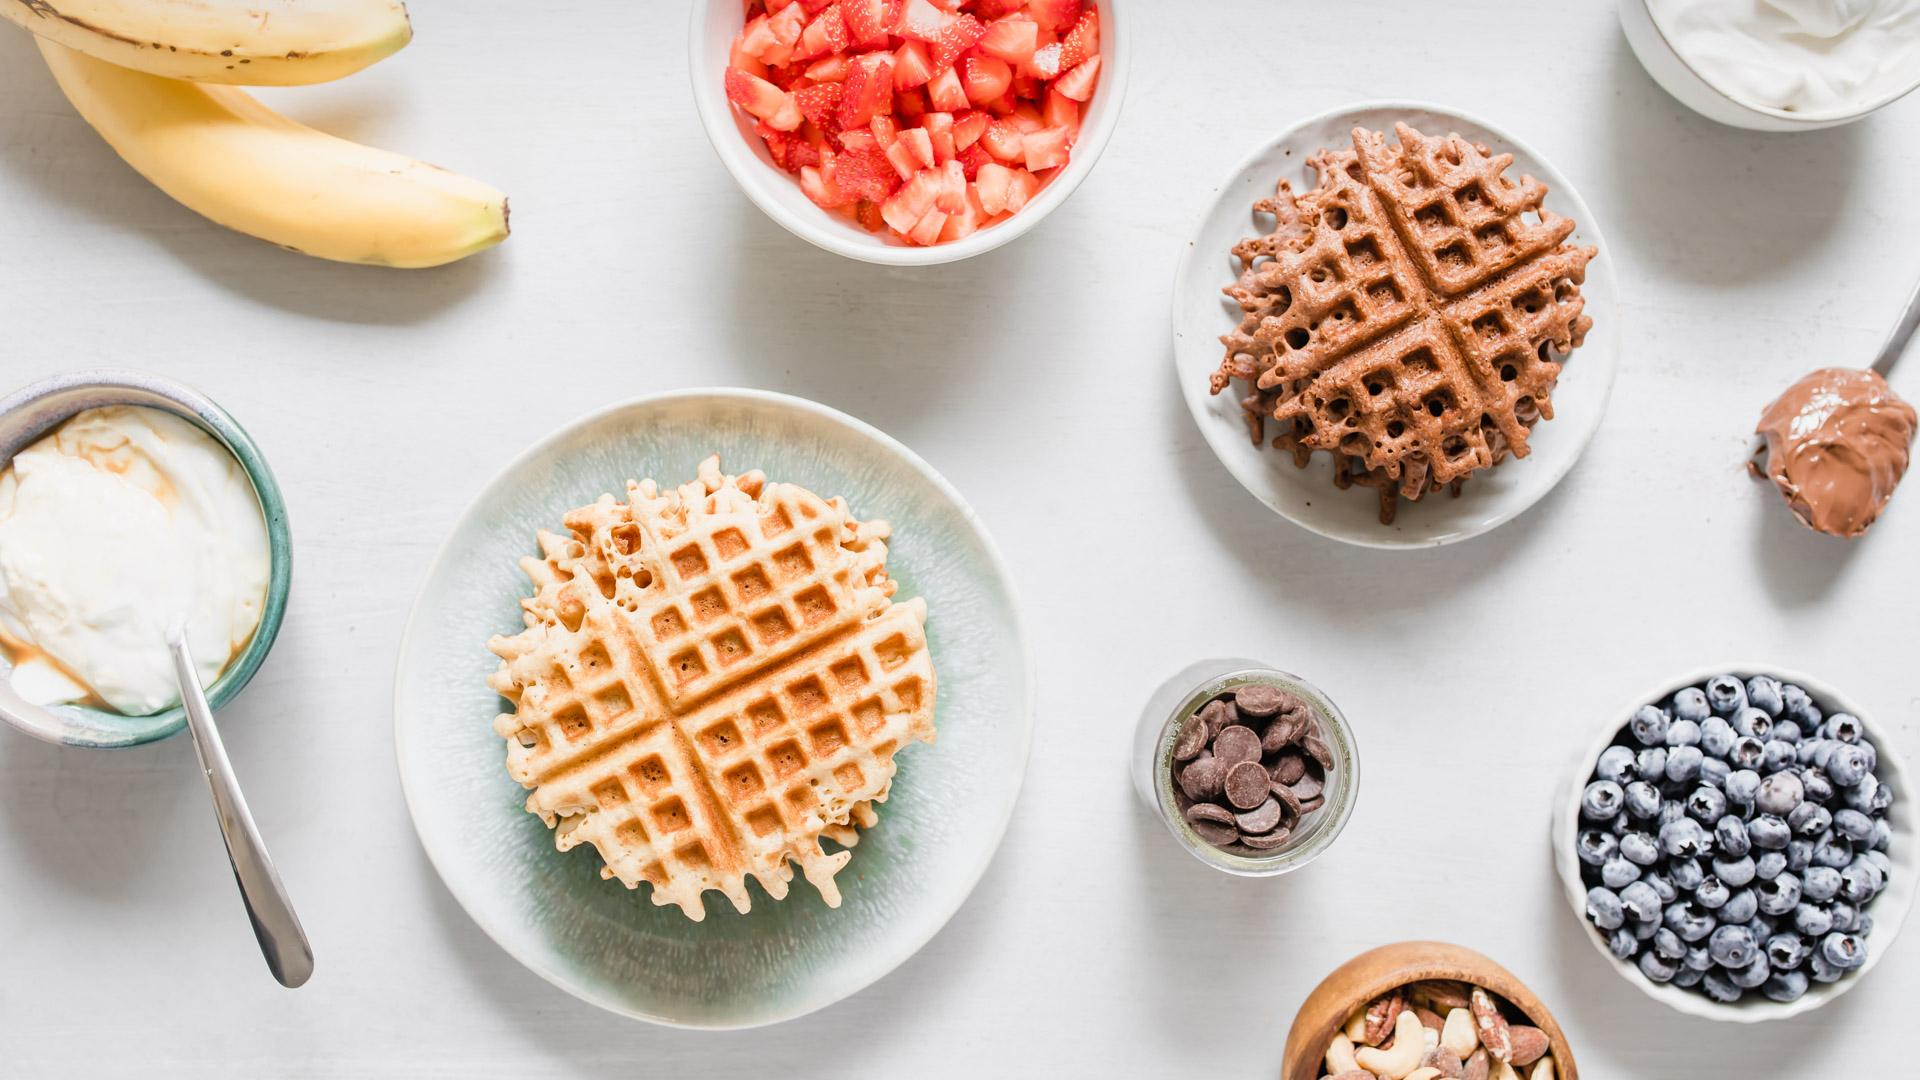 Waffles and waffle toppings in individual dishes on a table